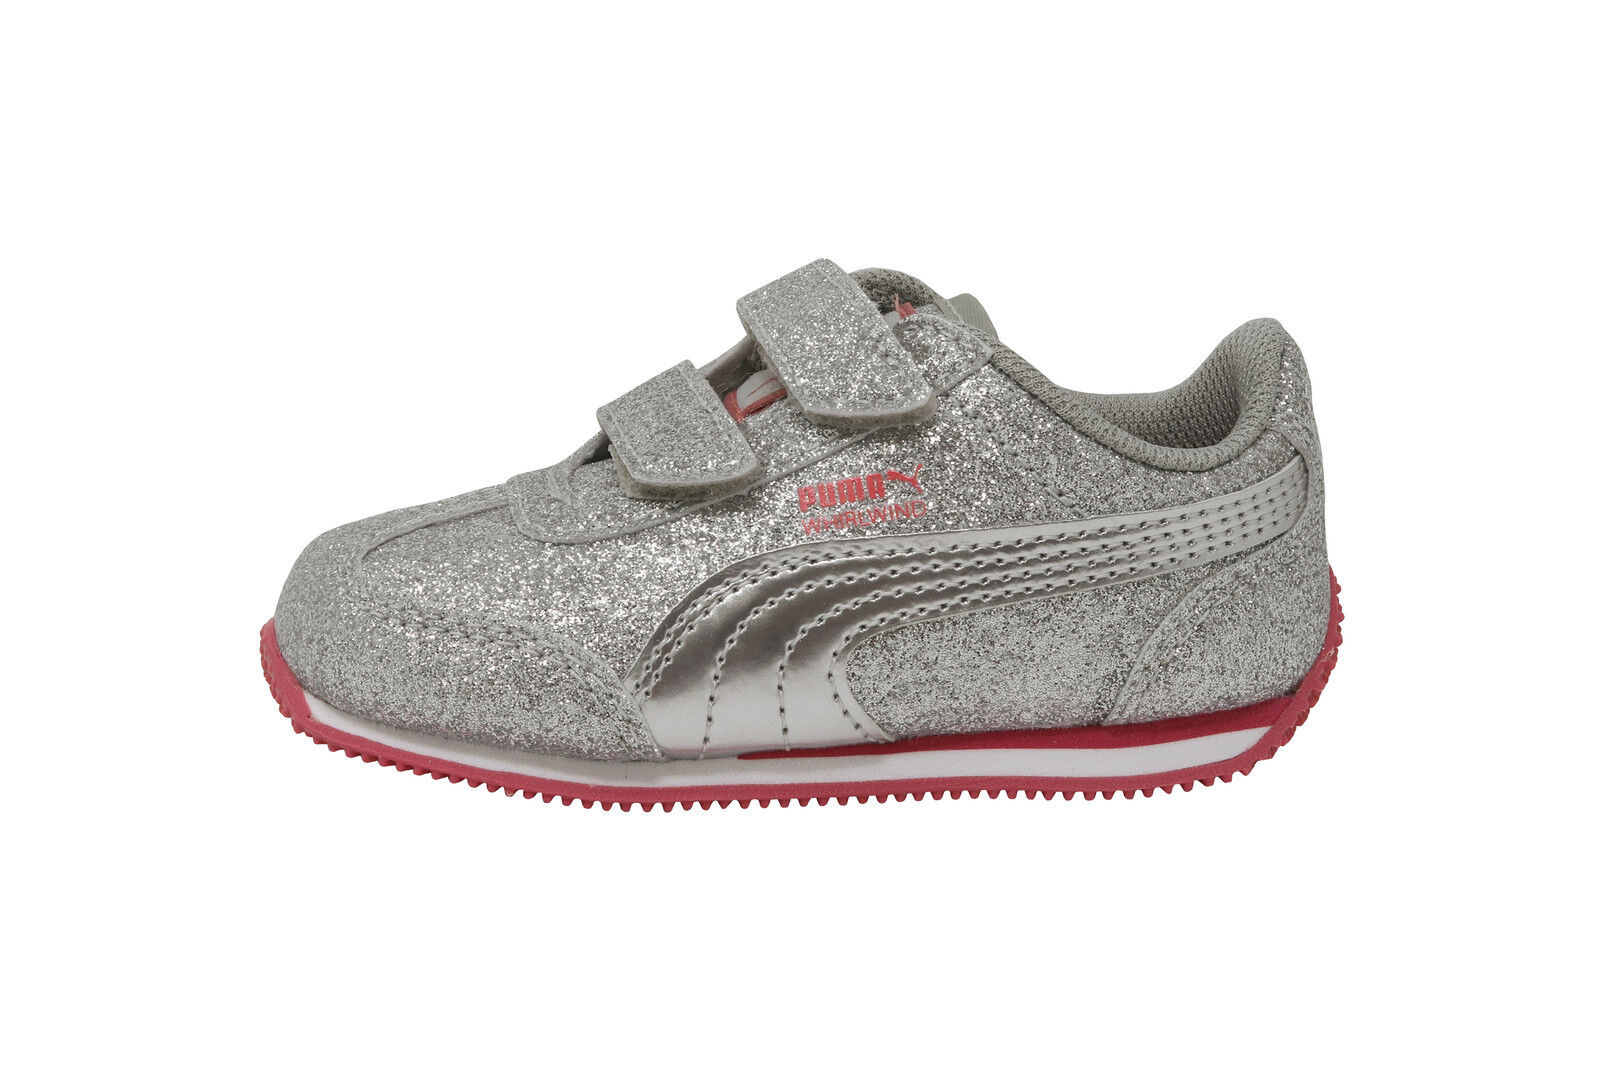 PUMA Shoes Girls Whirlwind Glitz V Toddler Infant Baby Kids Silver Pink Sneaker 1